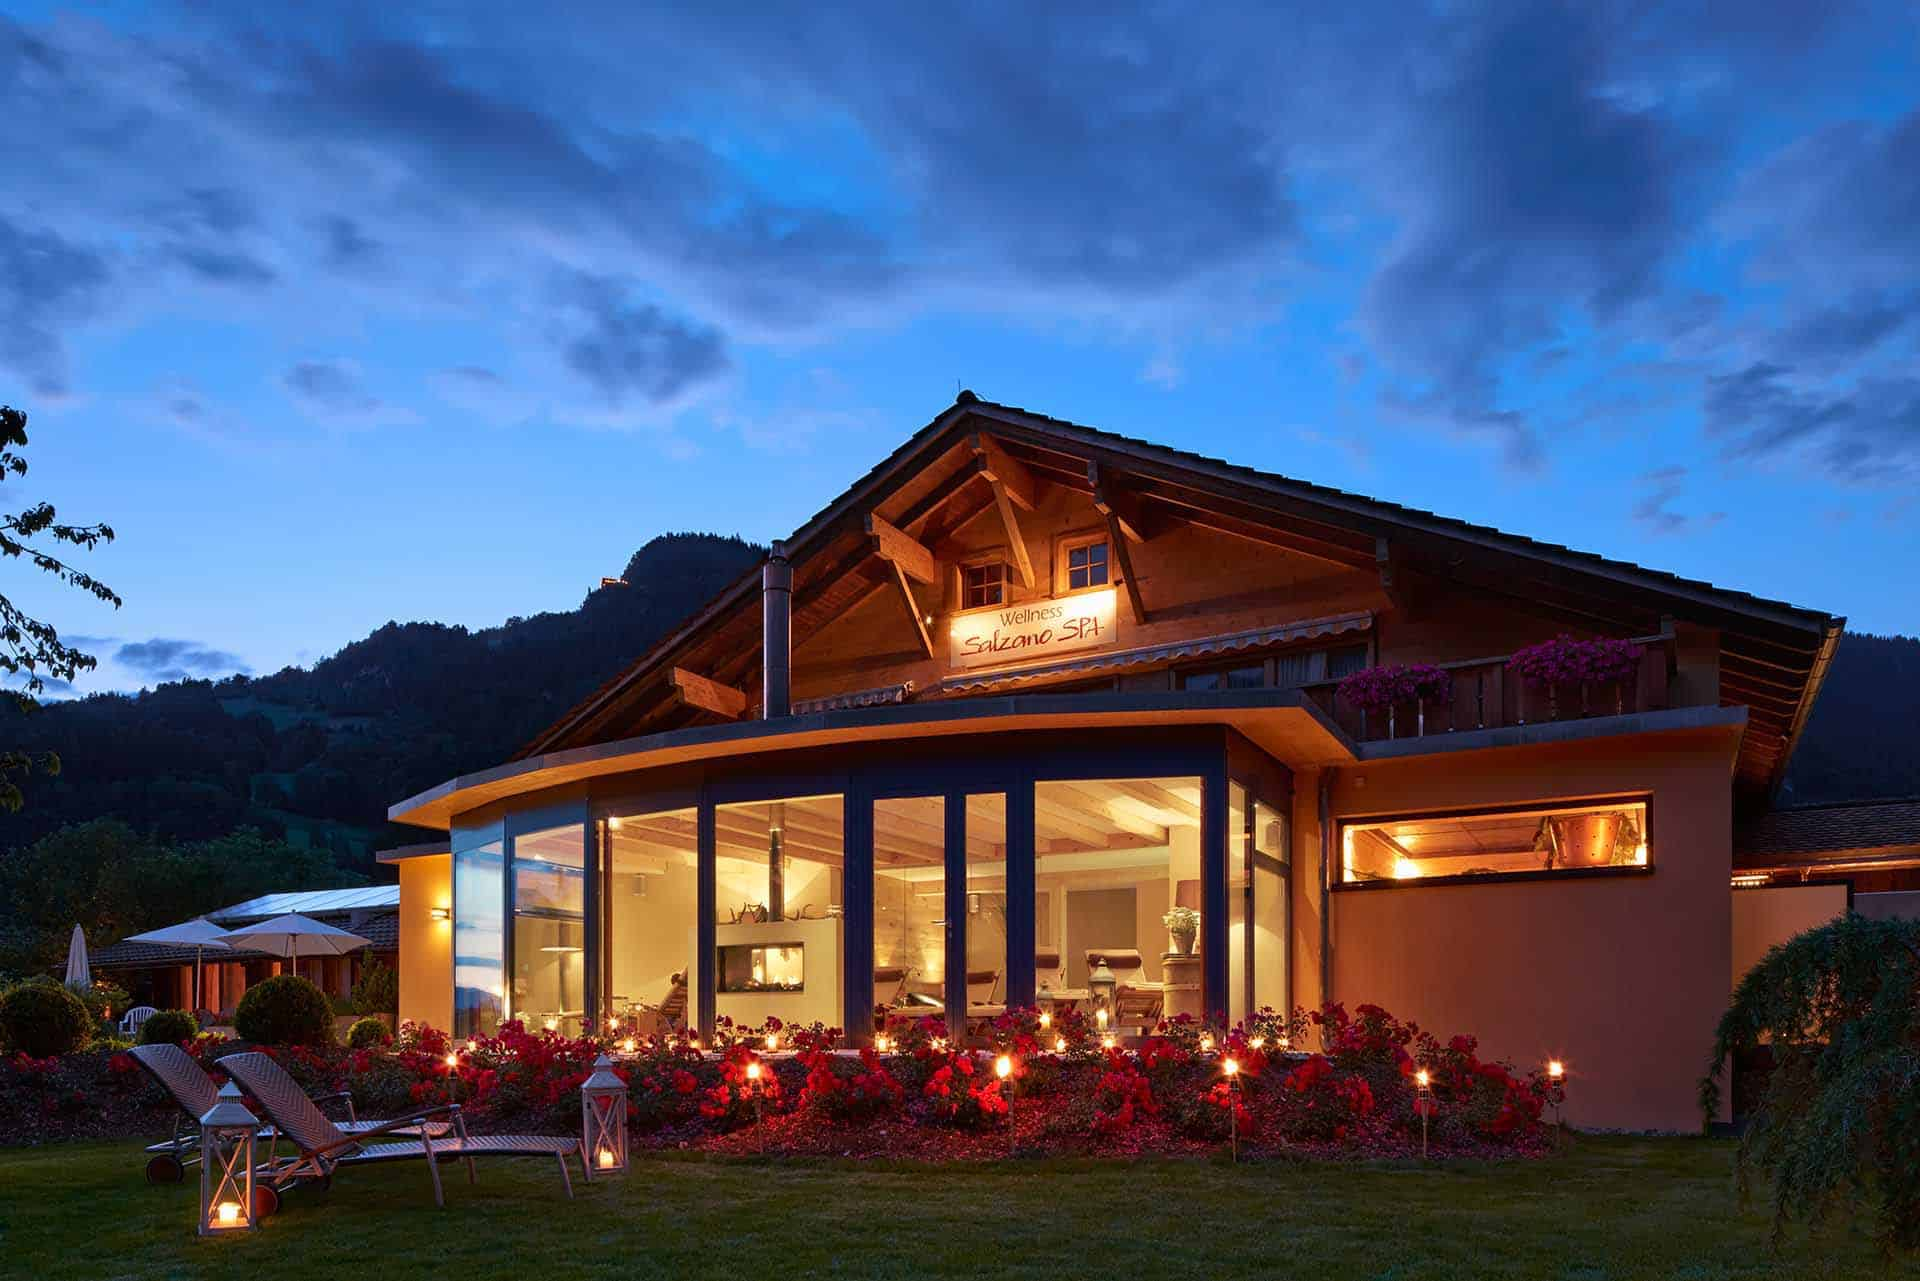 SALZANO Hotel - Spa - Restaurant in Interlaken / Wellness - Alpin Spa - SALZANO Spa Interlaken